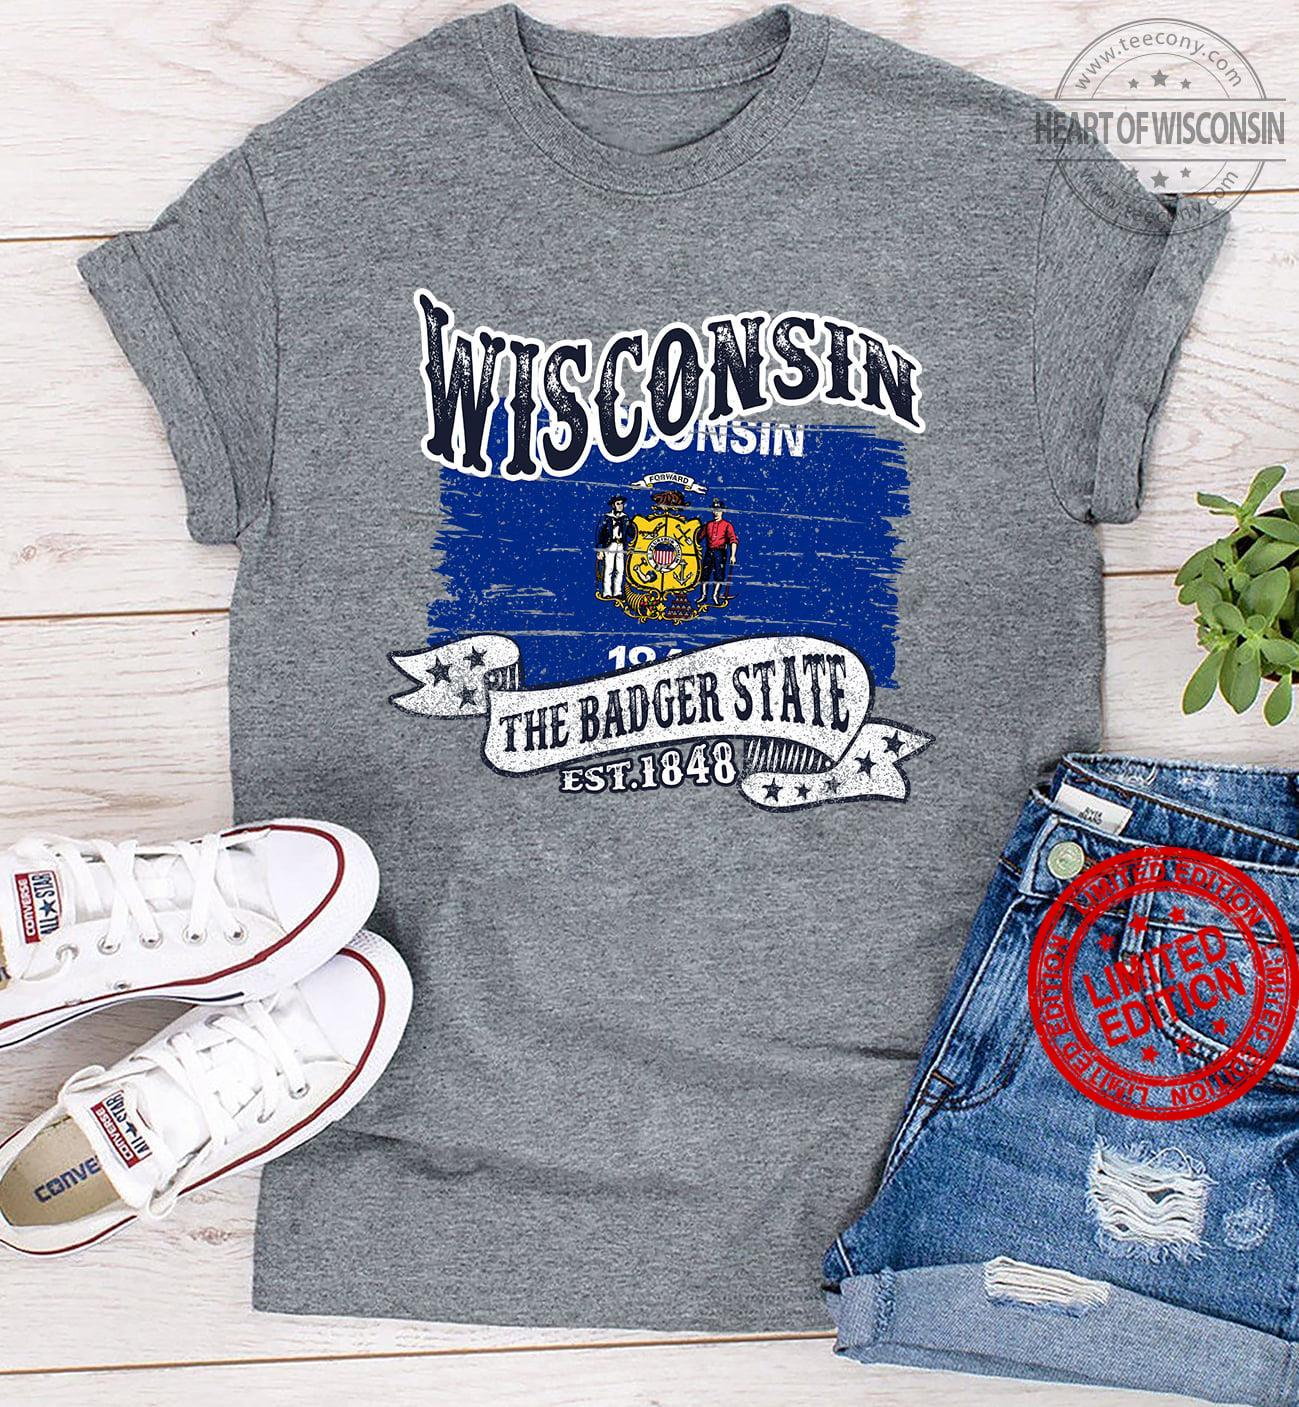 Wisconsin The Badger State Est.1848 Shirt